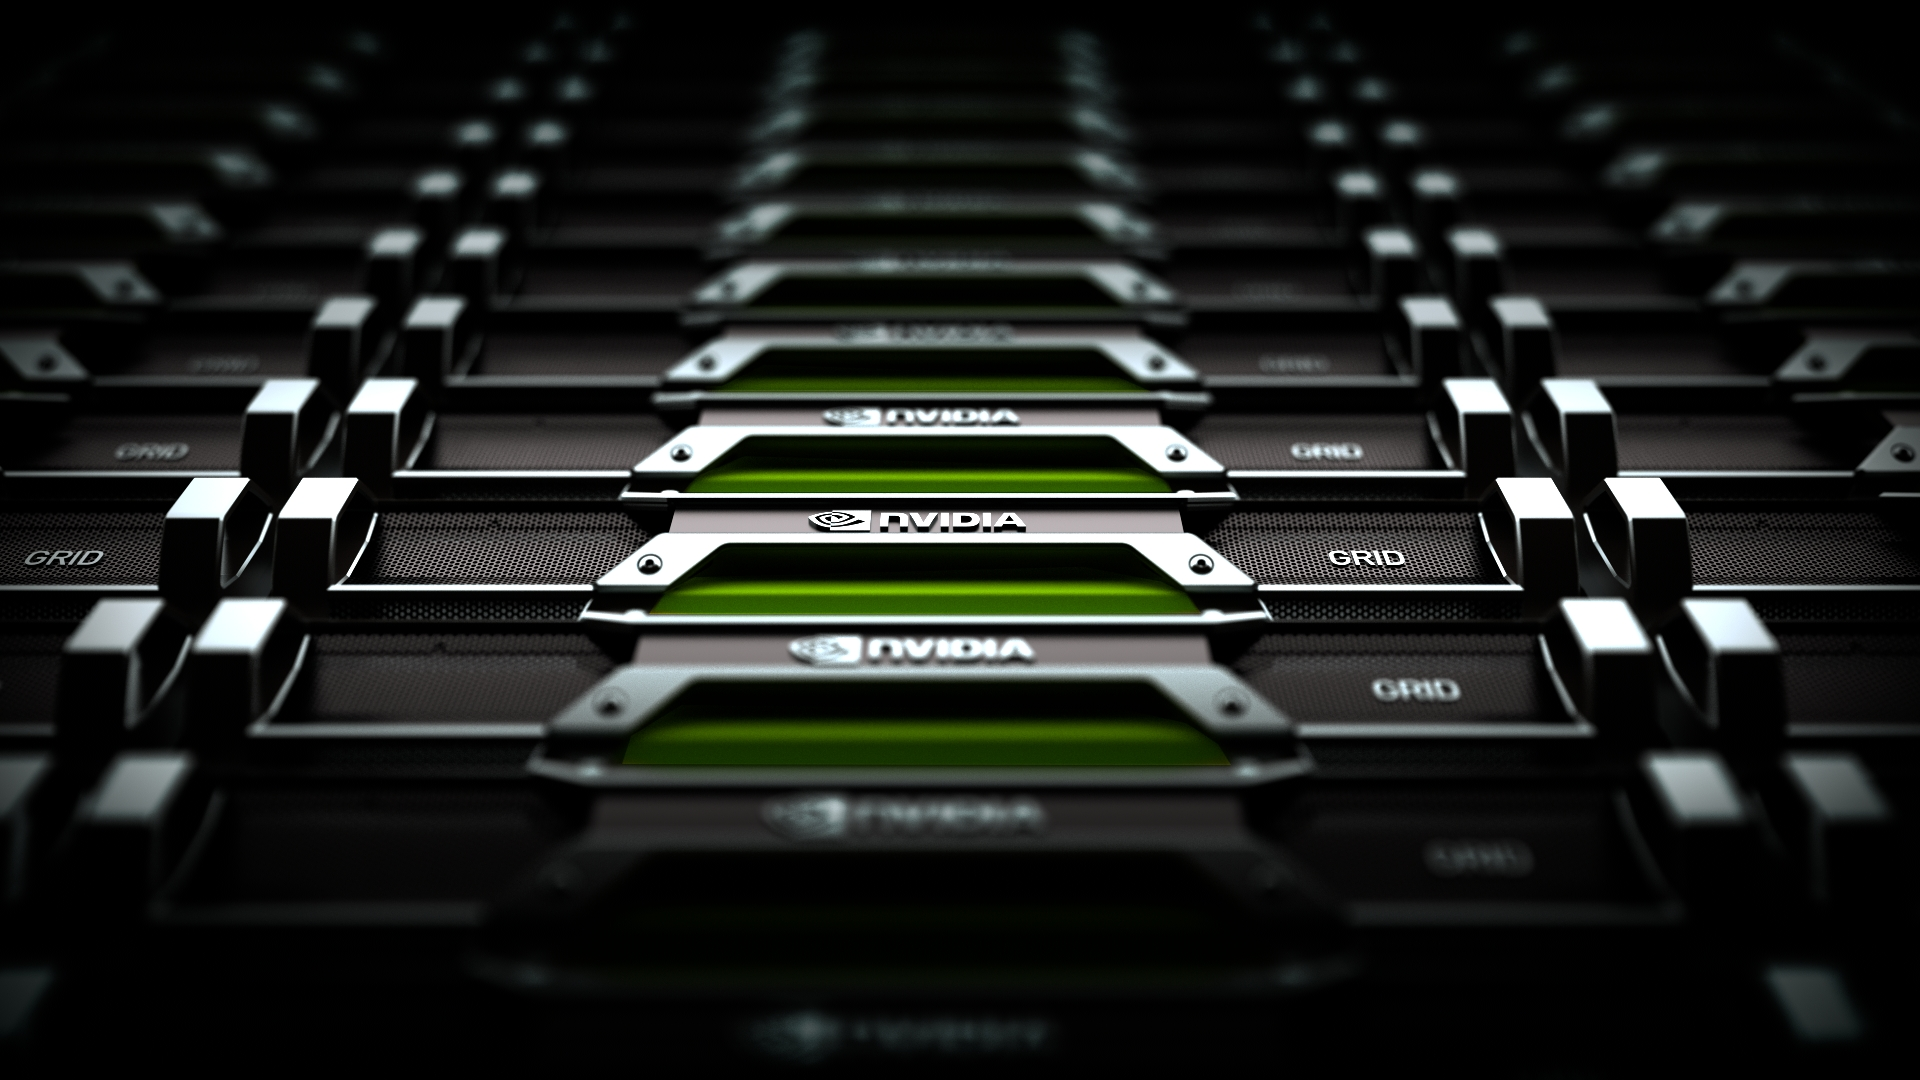 NVIDIA GRID Cloud Gaming Platform, cloud gaming, NVIDIA VGX Hypervisor